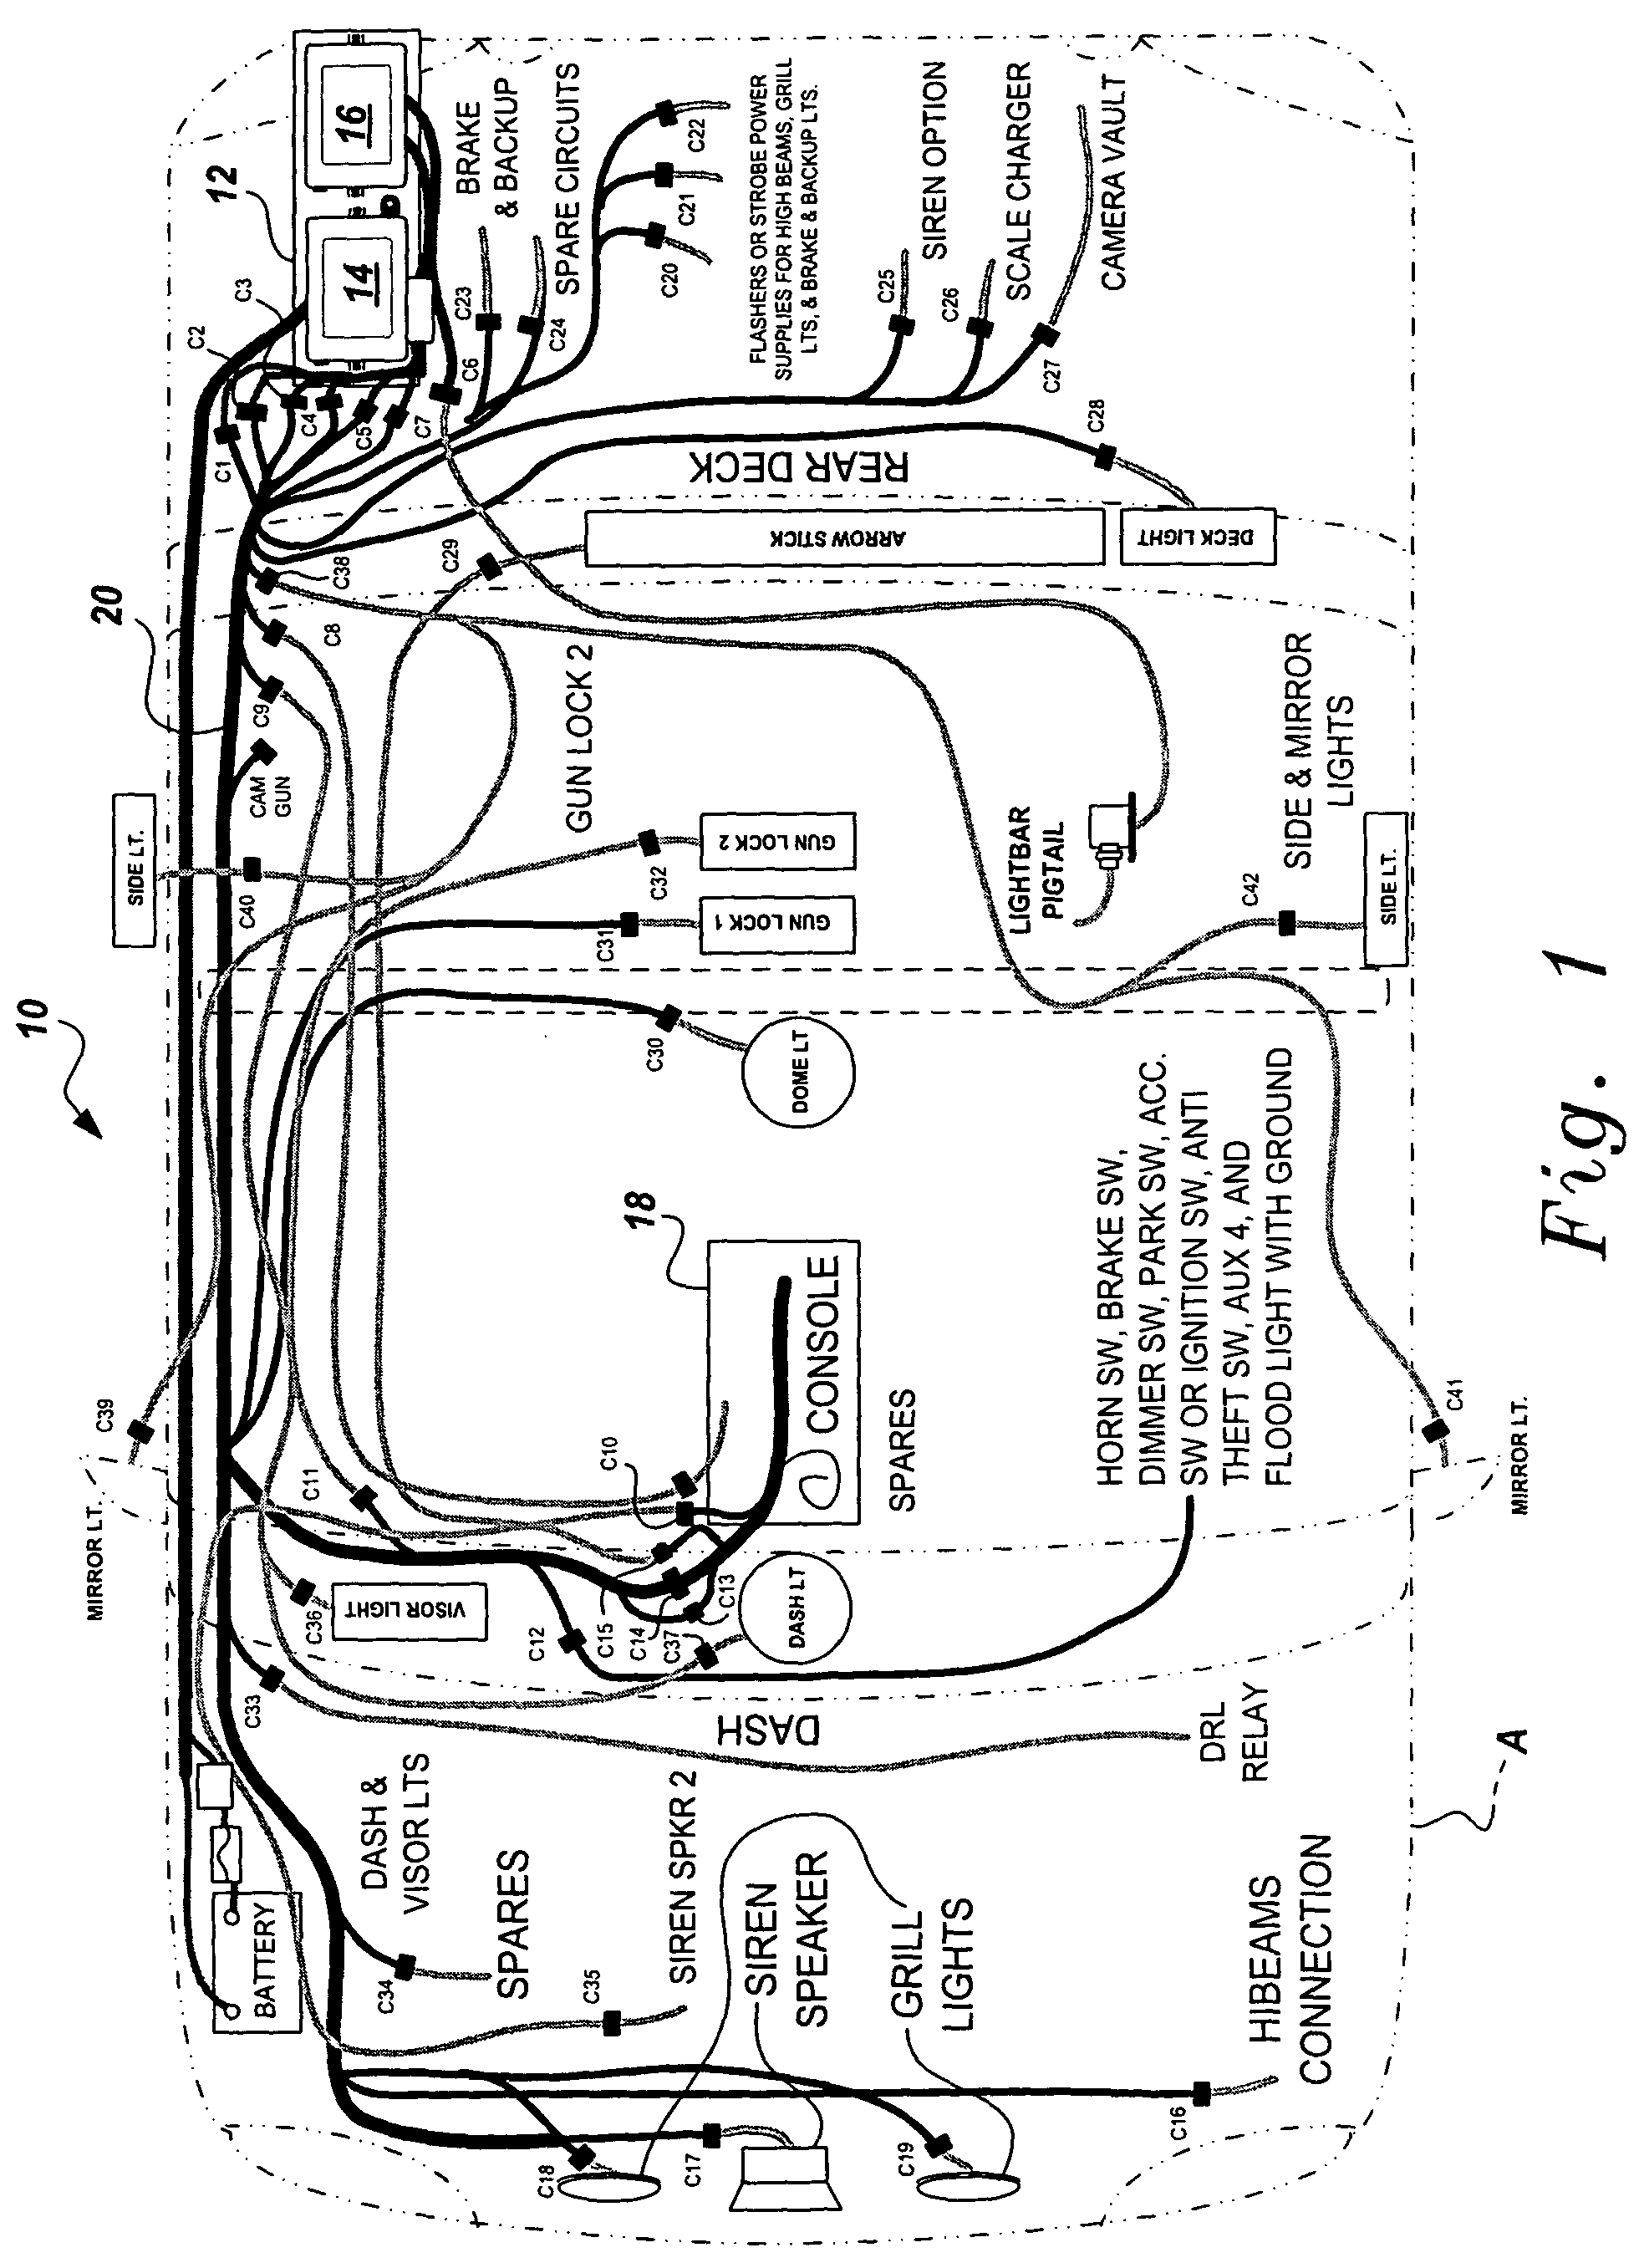 US07342325 20080311 D00001 cat sr4 wiring diagram wiring automotive wiring diagrams Caterpillar SR4B Model Specification Sheet at bayanpartner.co